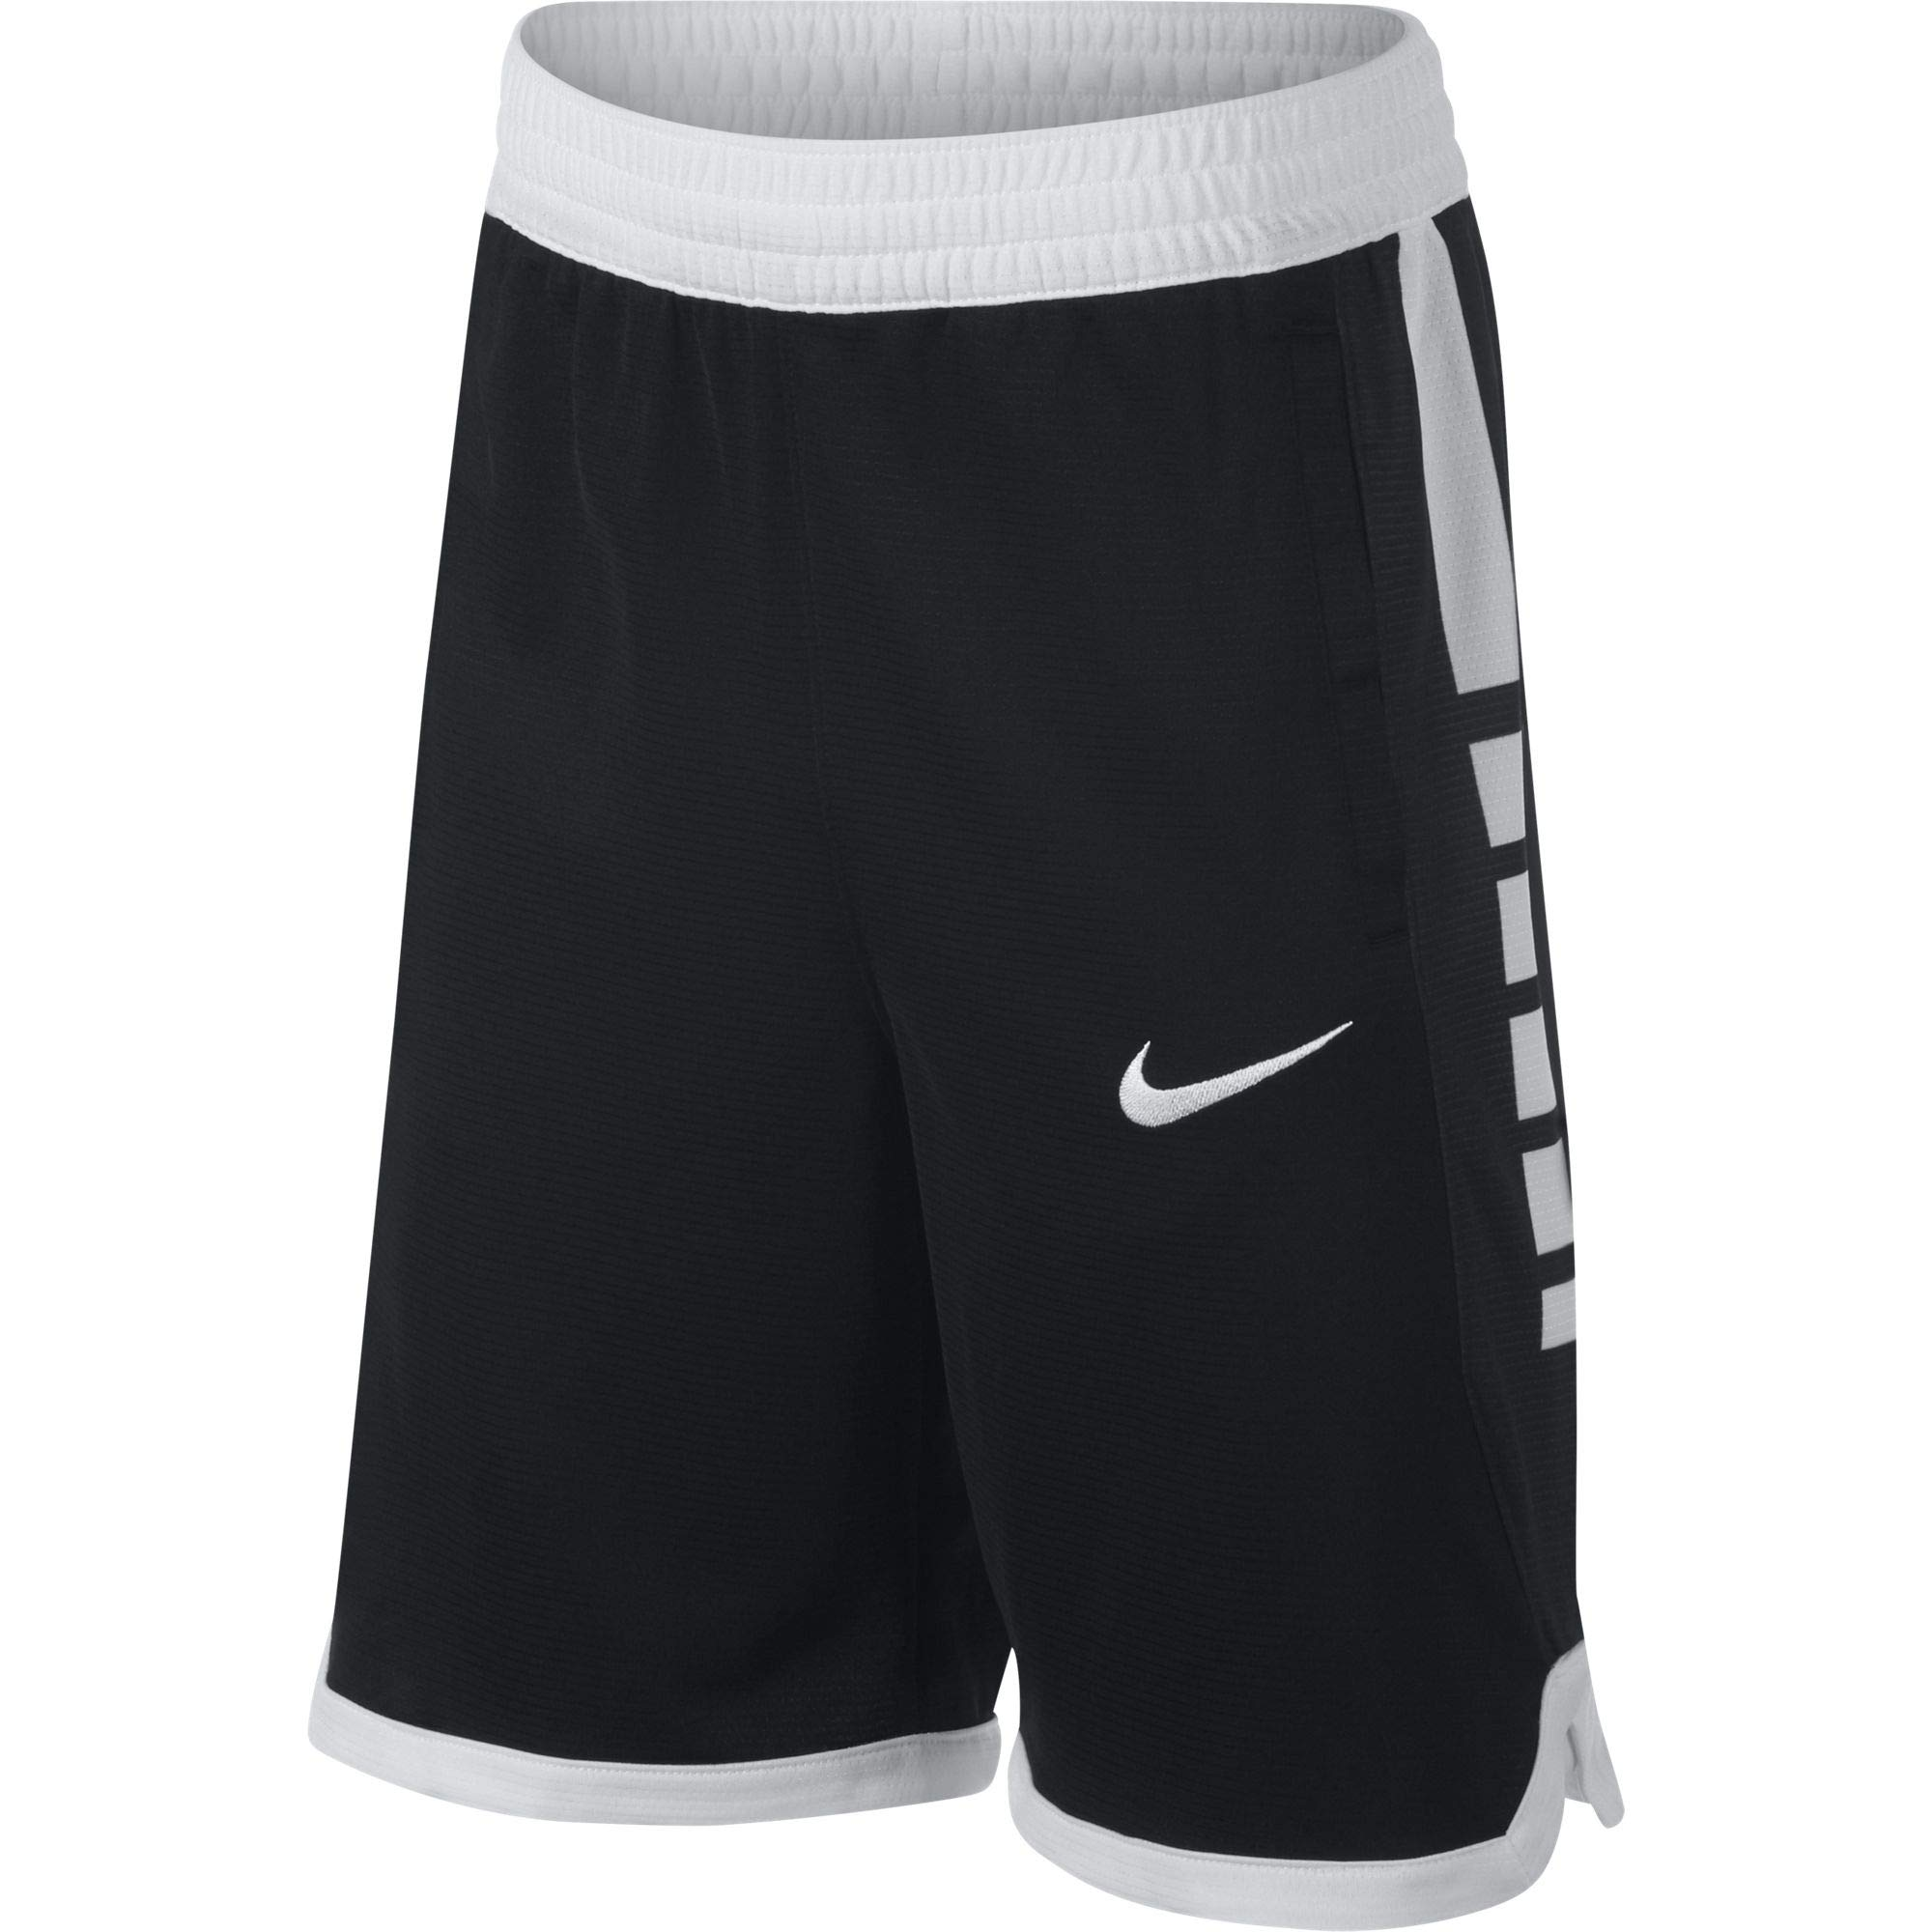 Nike Boy's Dri Fit Basketball Shorts Black/White Size Small